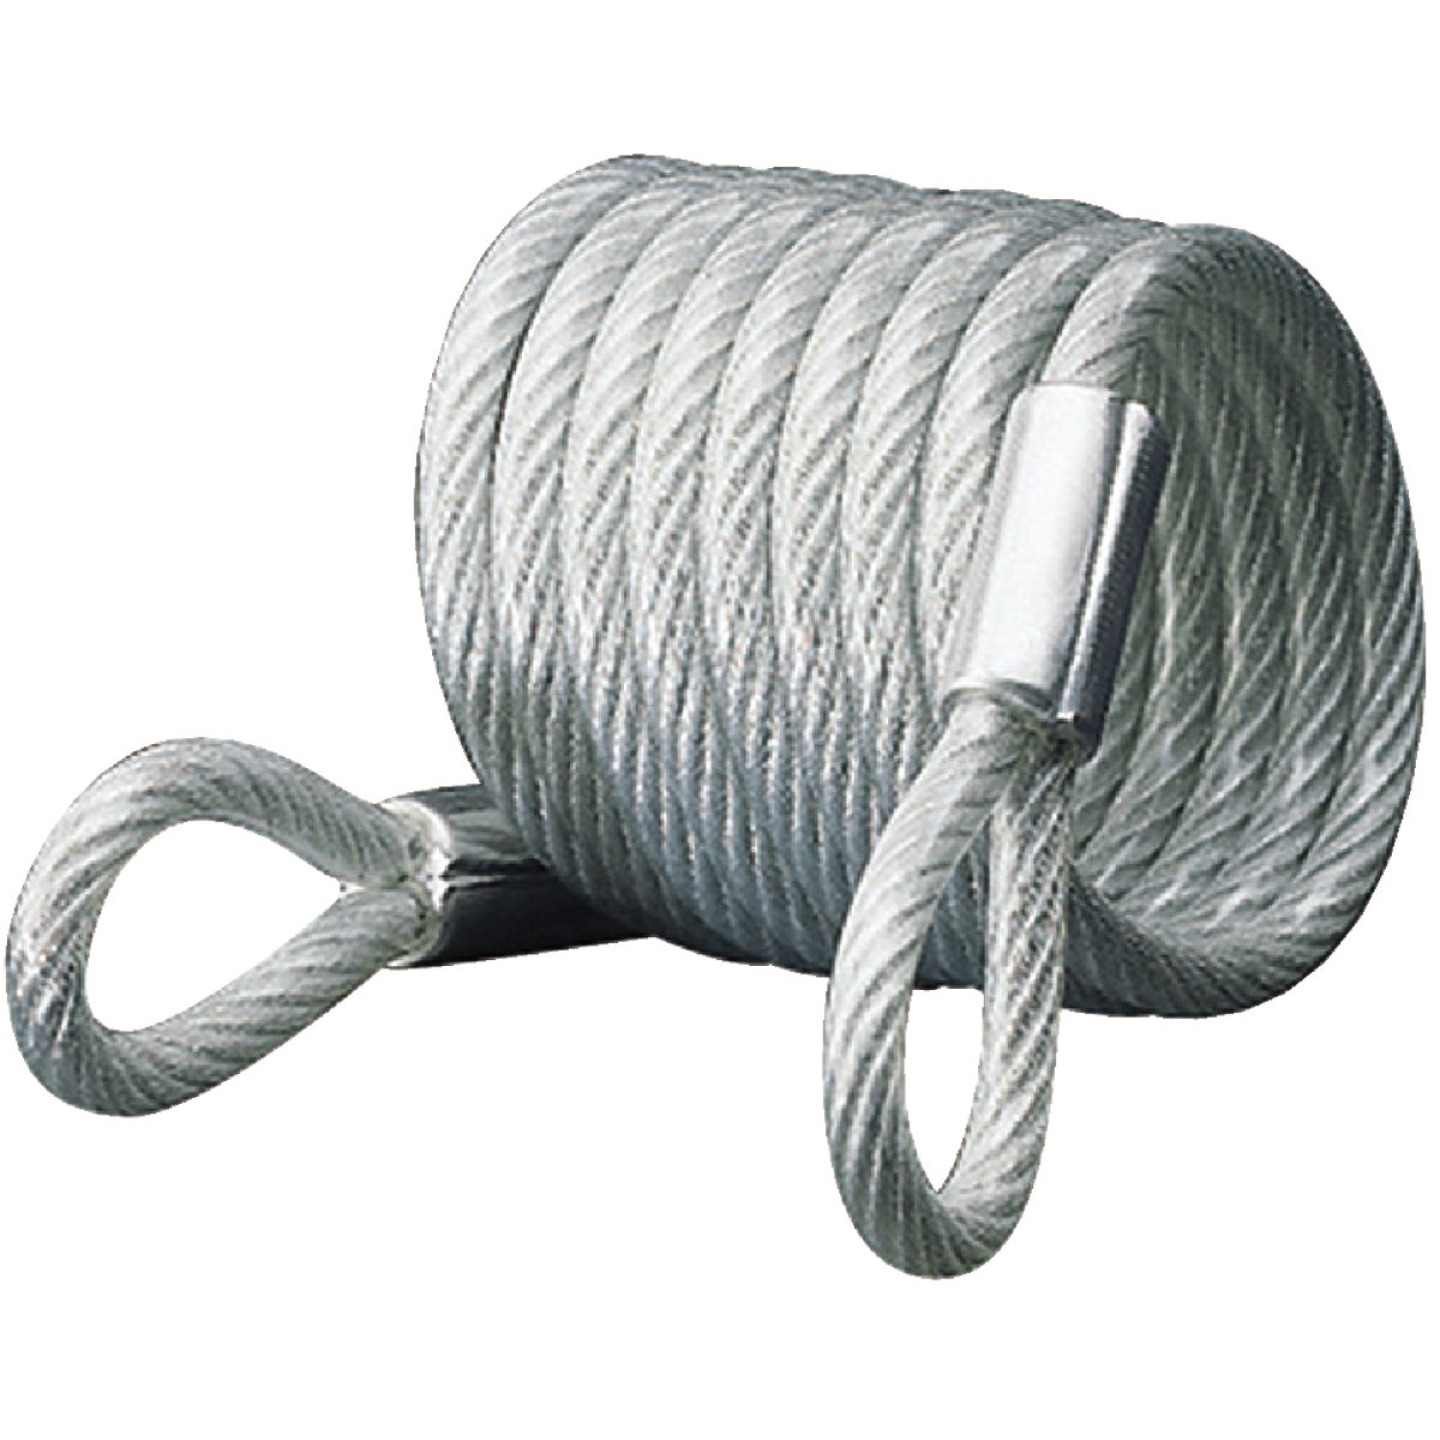 Master Lock 6 Ft. x 1/4 In. Self-Coiling Cable Image 1